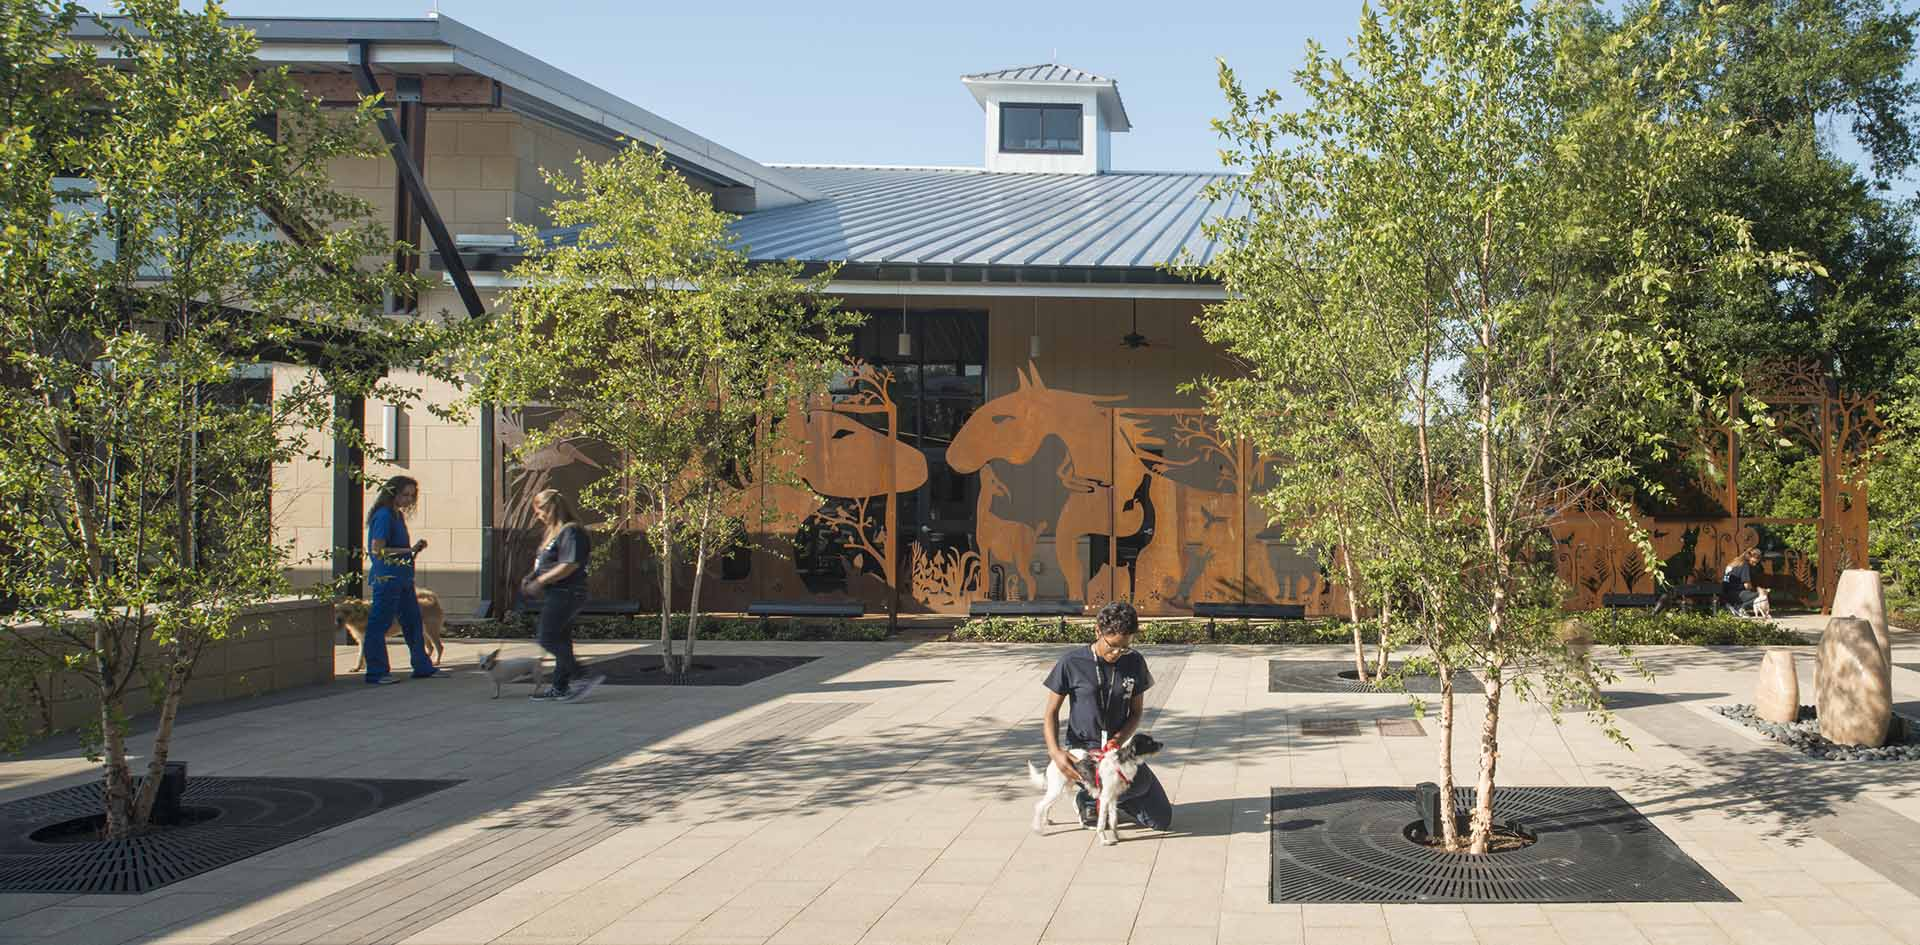 10.3  HSPCA state of the art animal shelter and wildlife center by Jackson & Ryan Architects